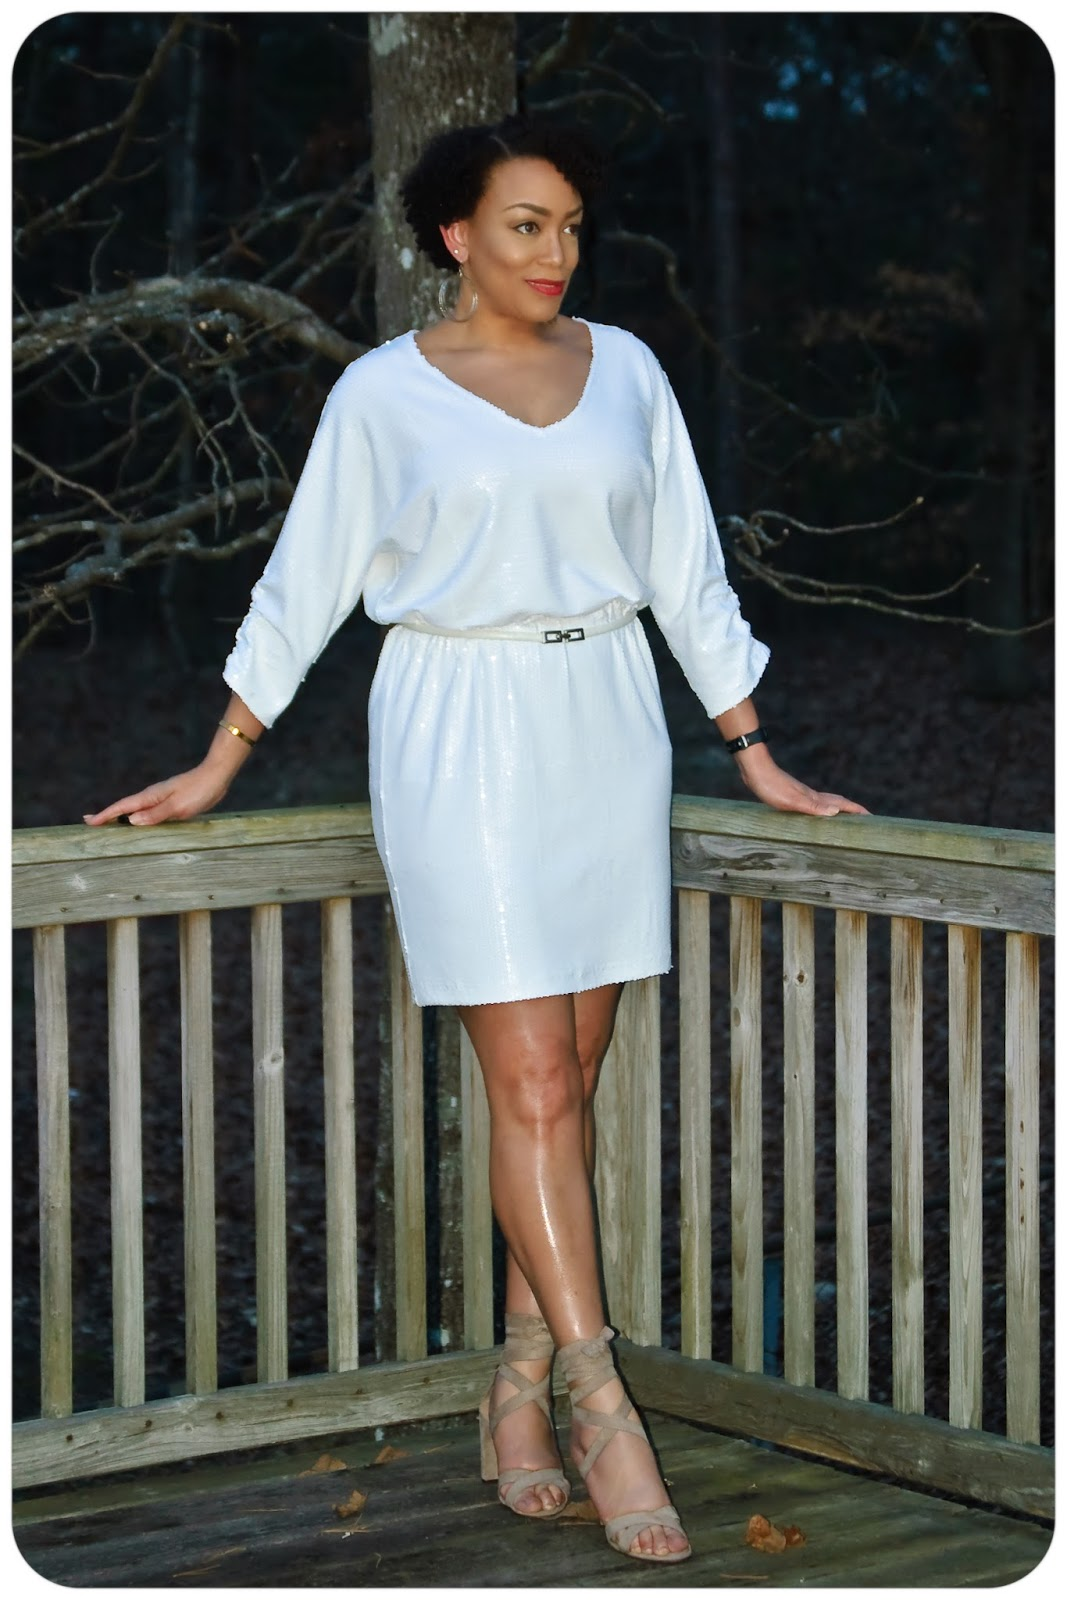 Vogue 8961 | A Little White Sequin Dress - Erica Bunker DIY Style!